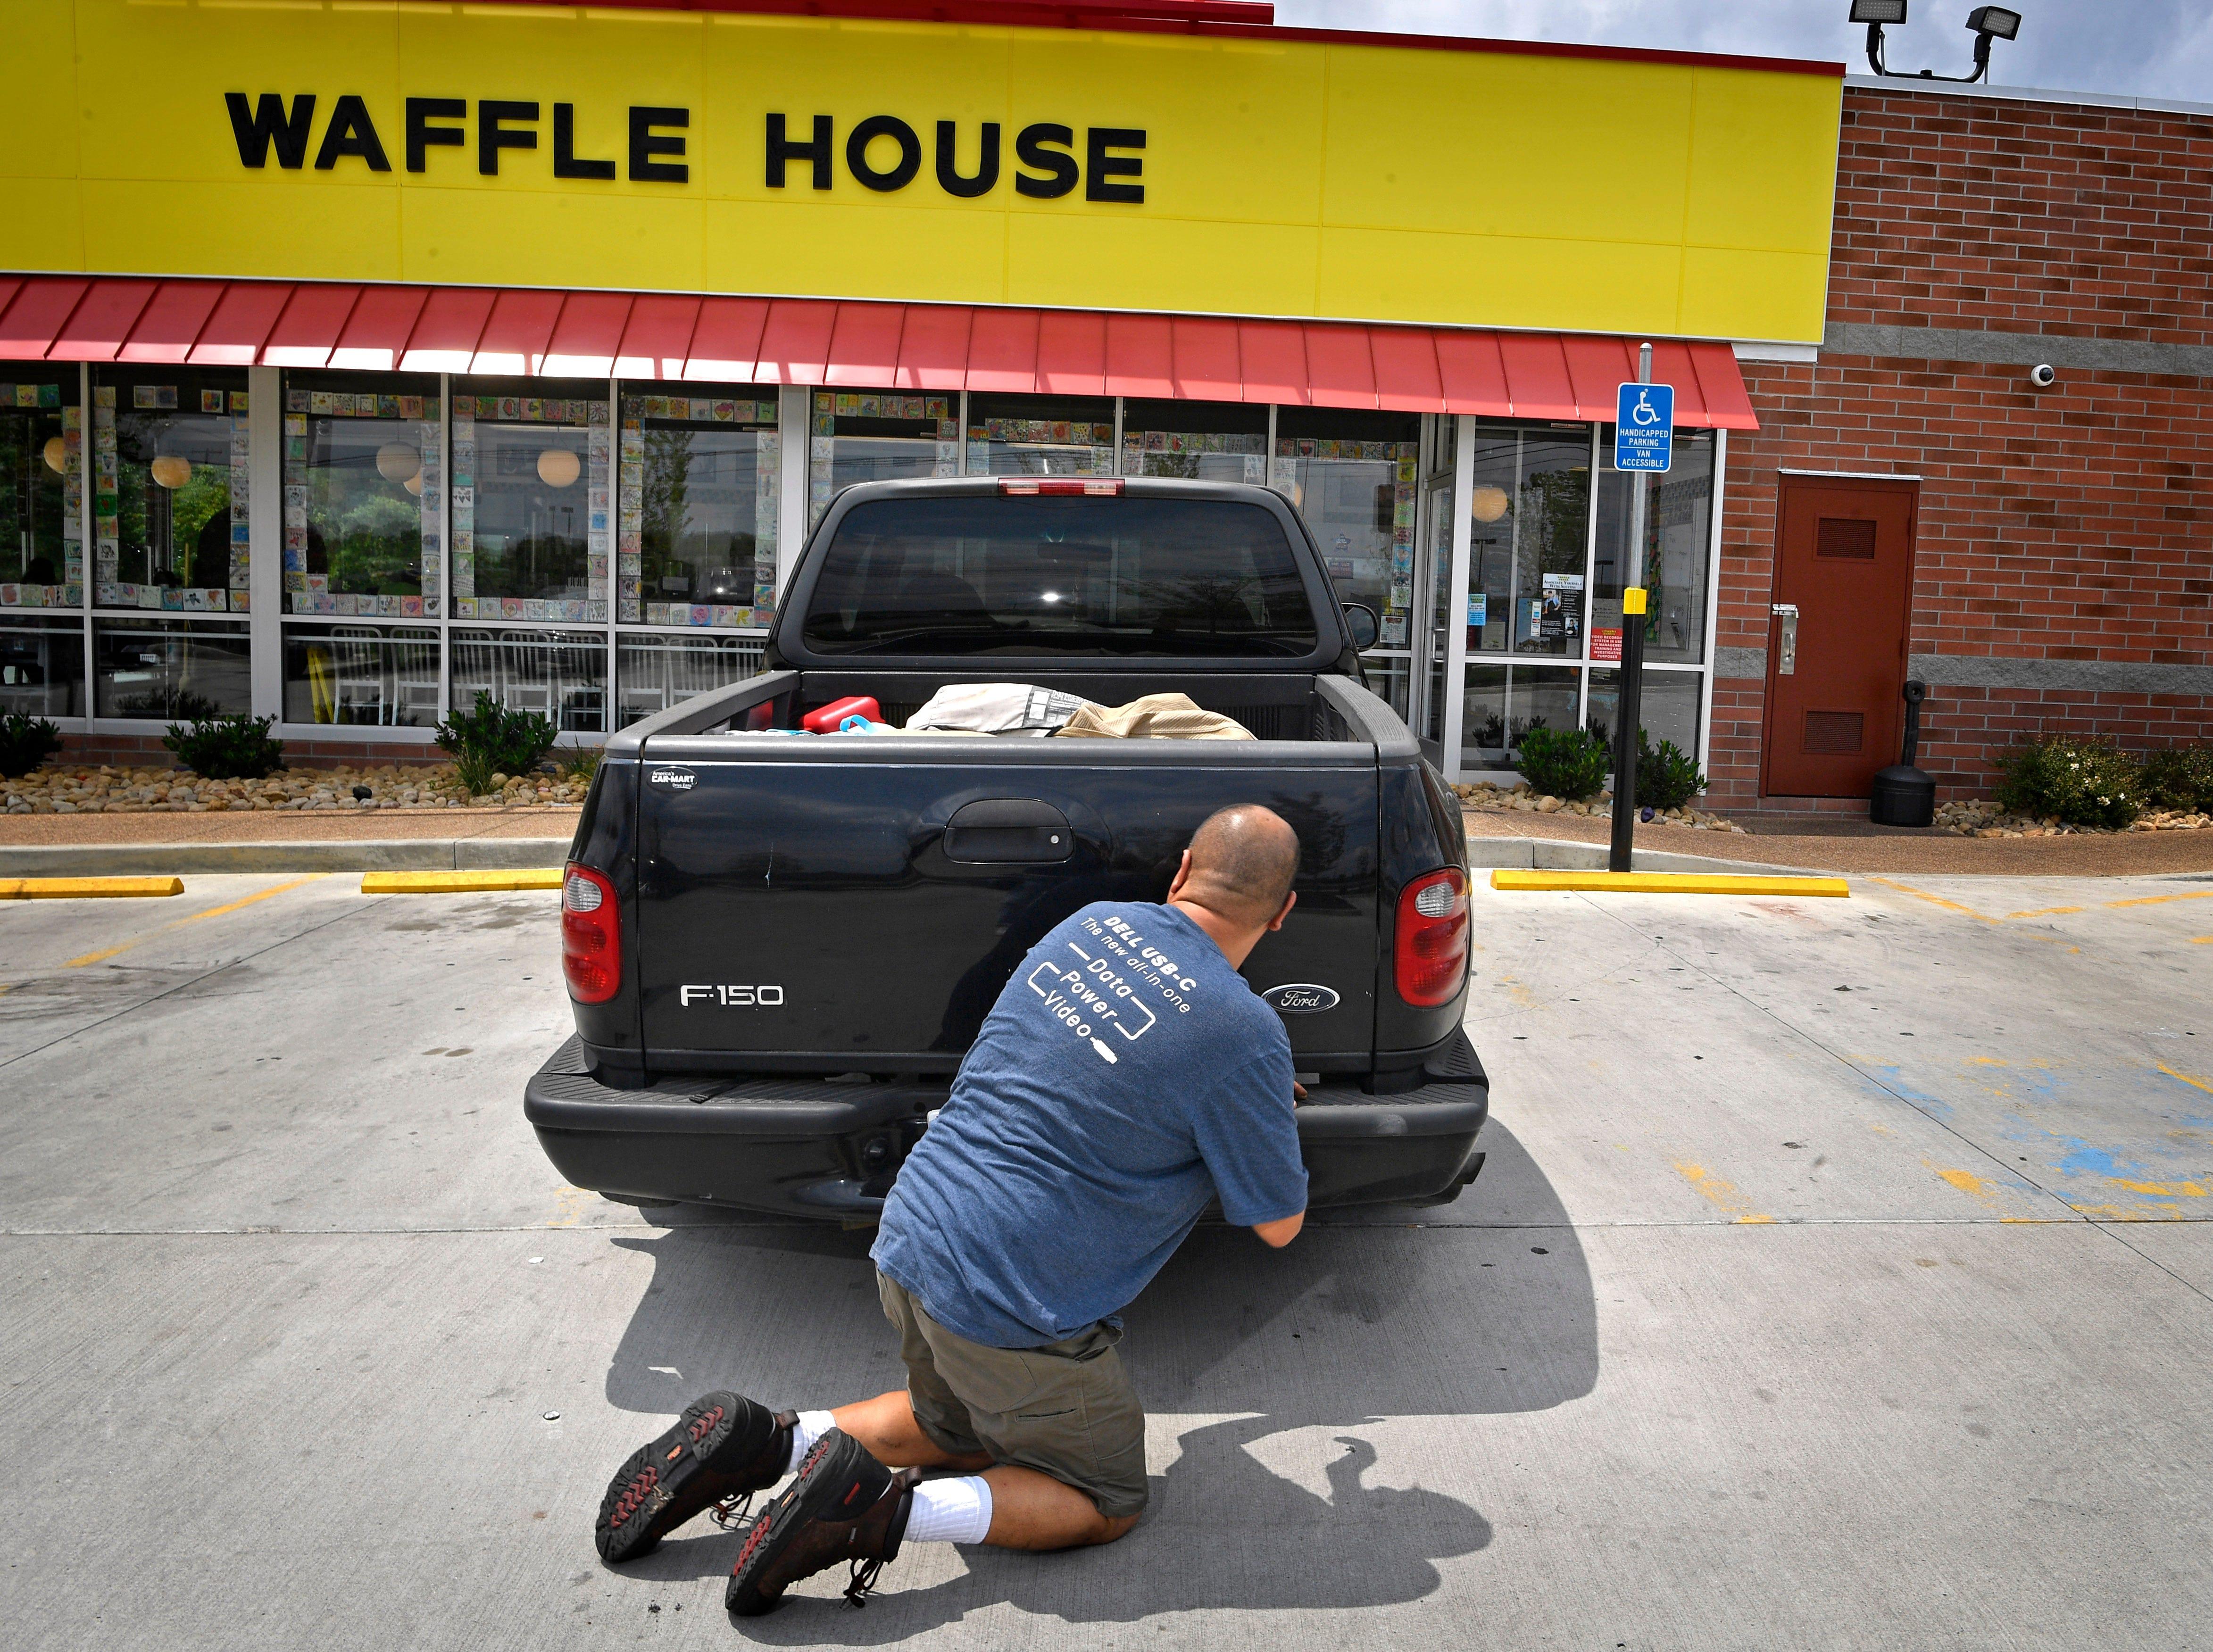 Chuck Cordero shows where he hid on the night four people lost their lives at the Waffle House.